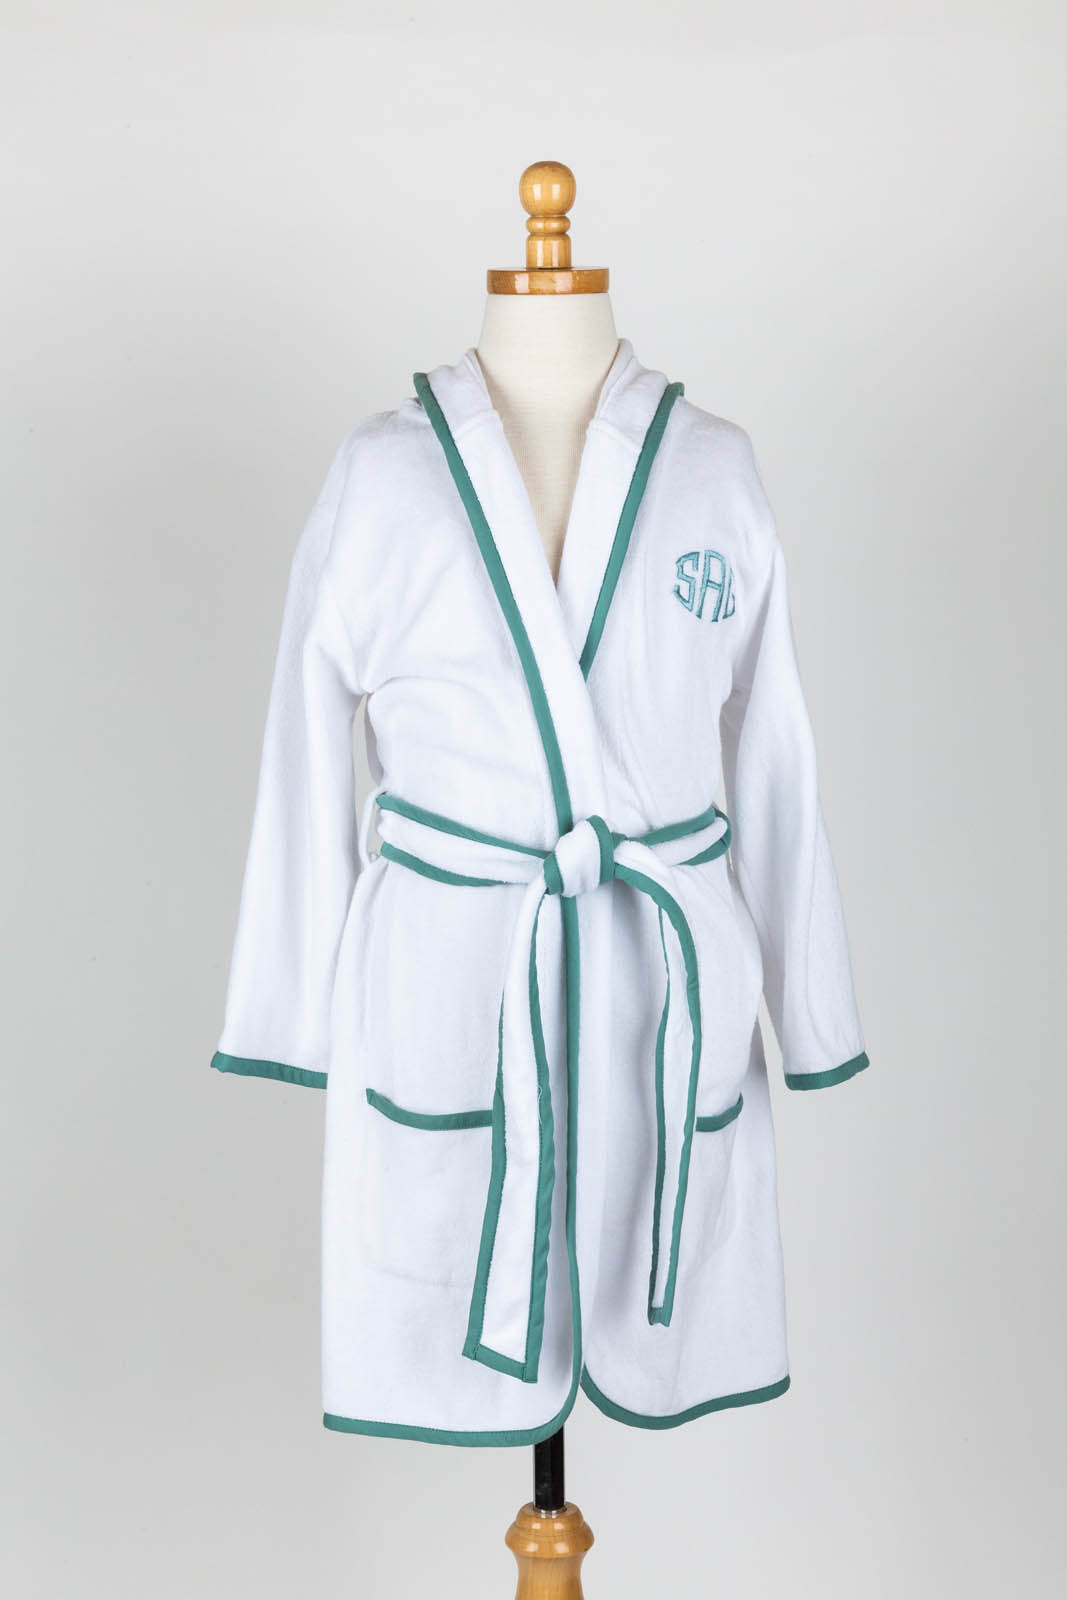 Short terry jersey hooded robe with Faith Monogram